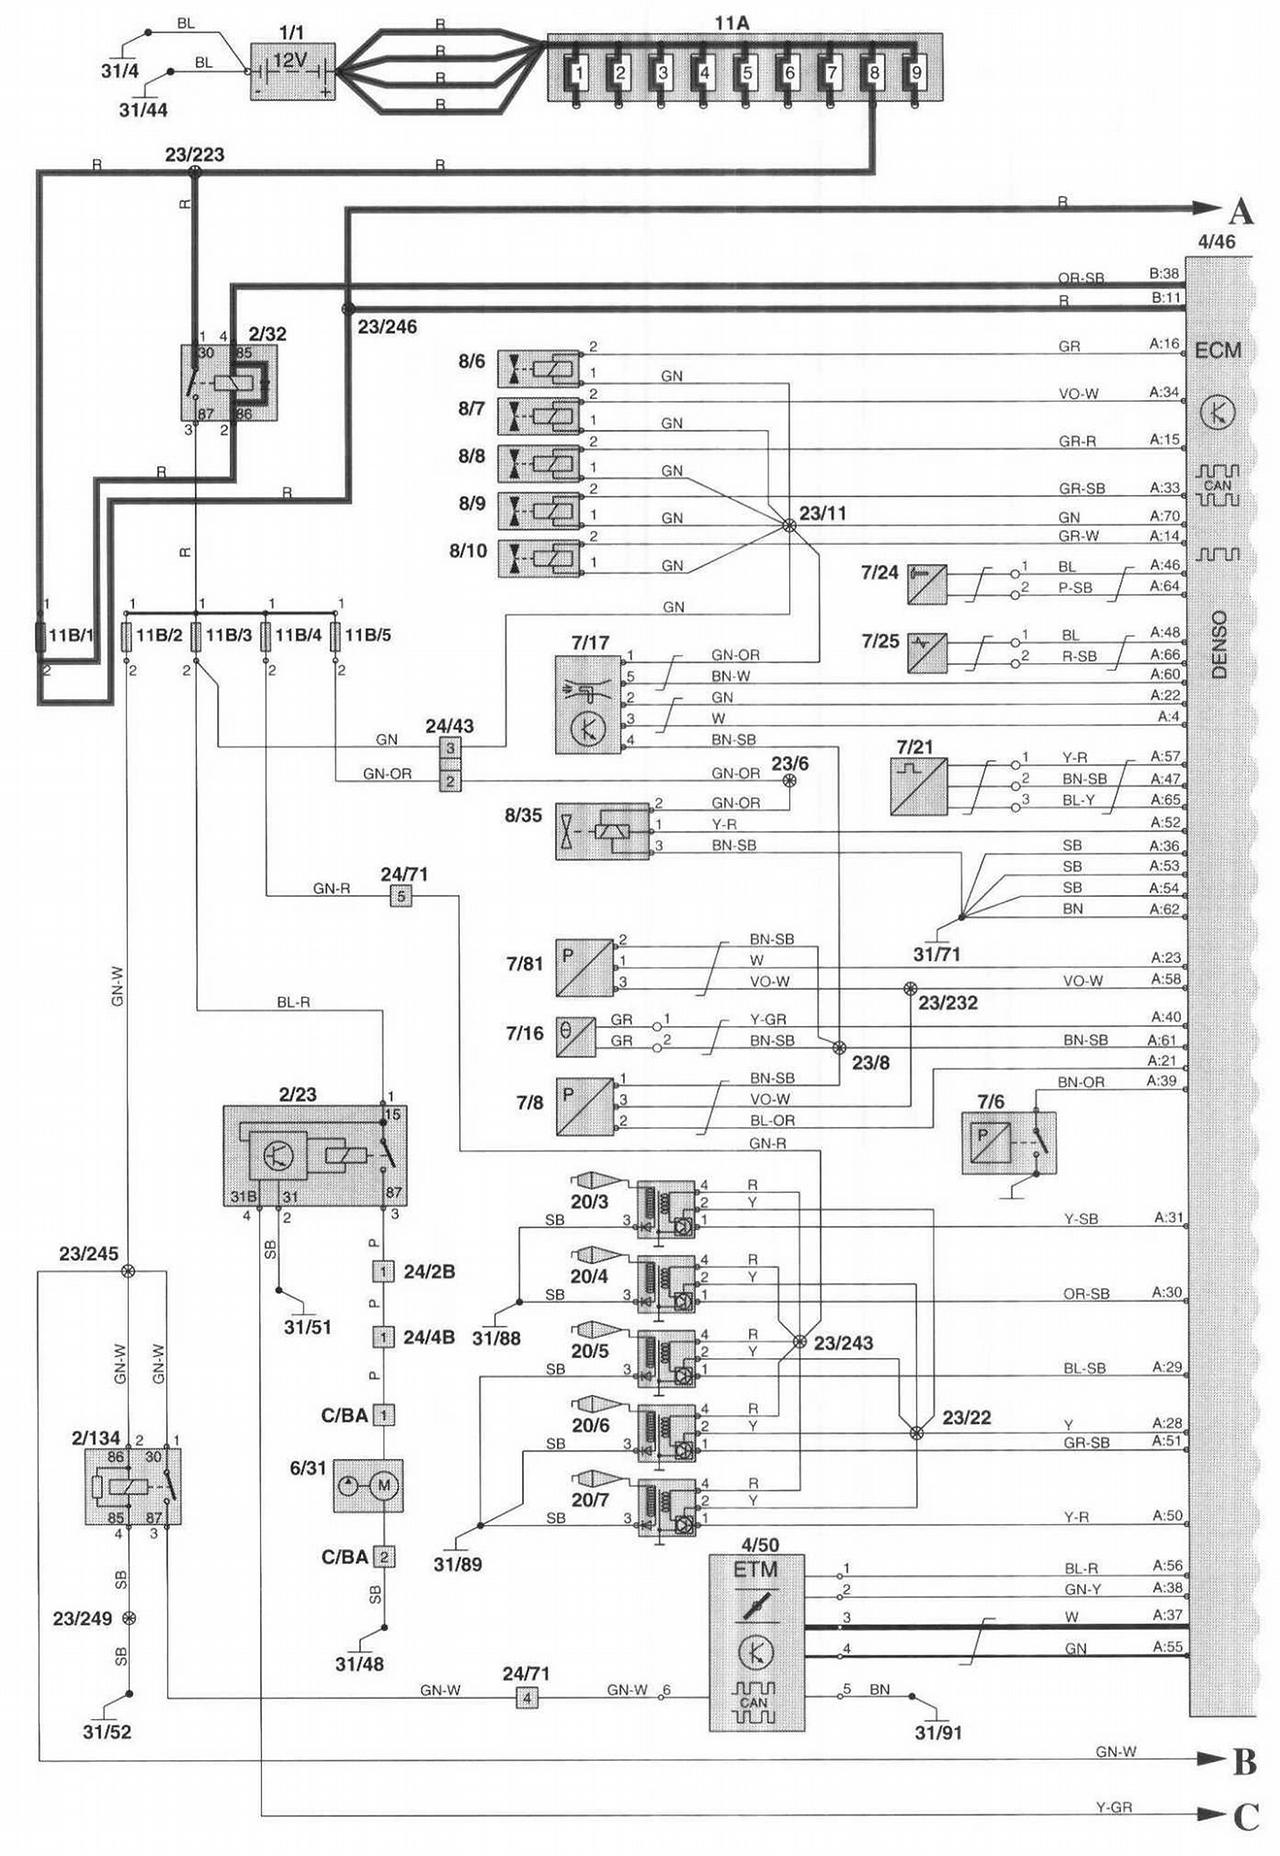 Volvo B12 Wiring Diagram